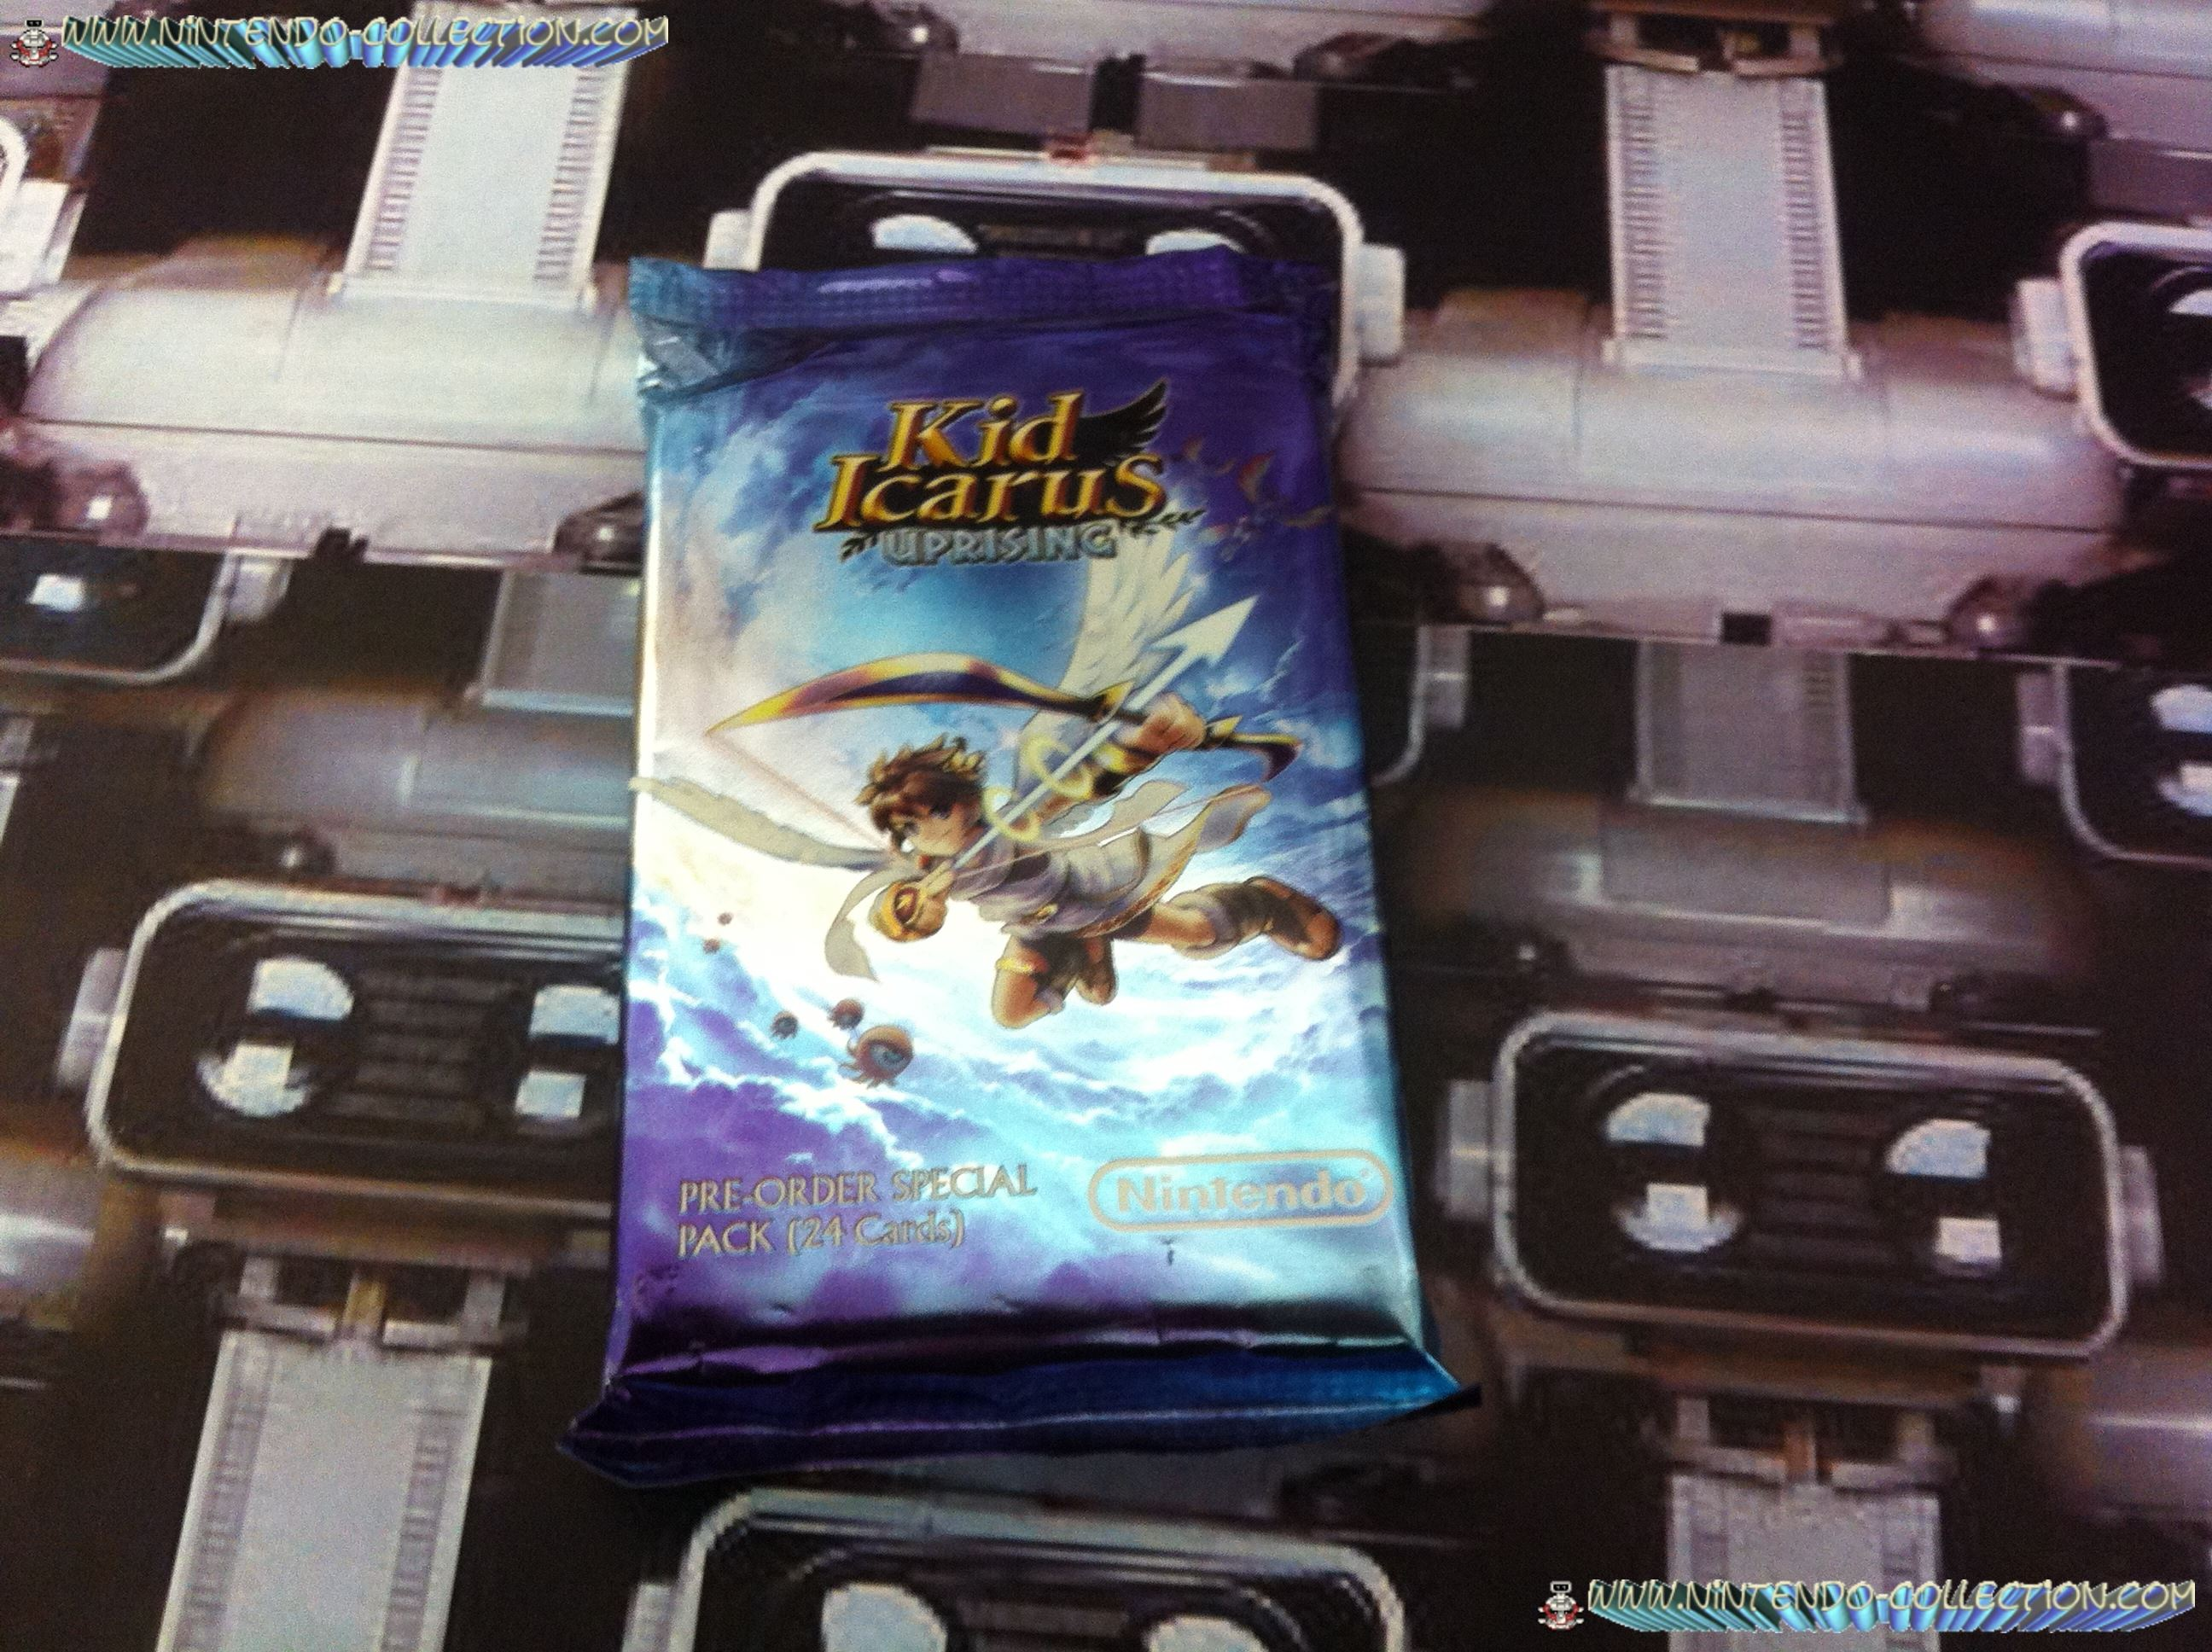 www.nintendo-collection.com - Pre-Reservation special pack Kid Icarus Uprising  24 Cartes - Nor For